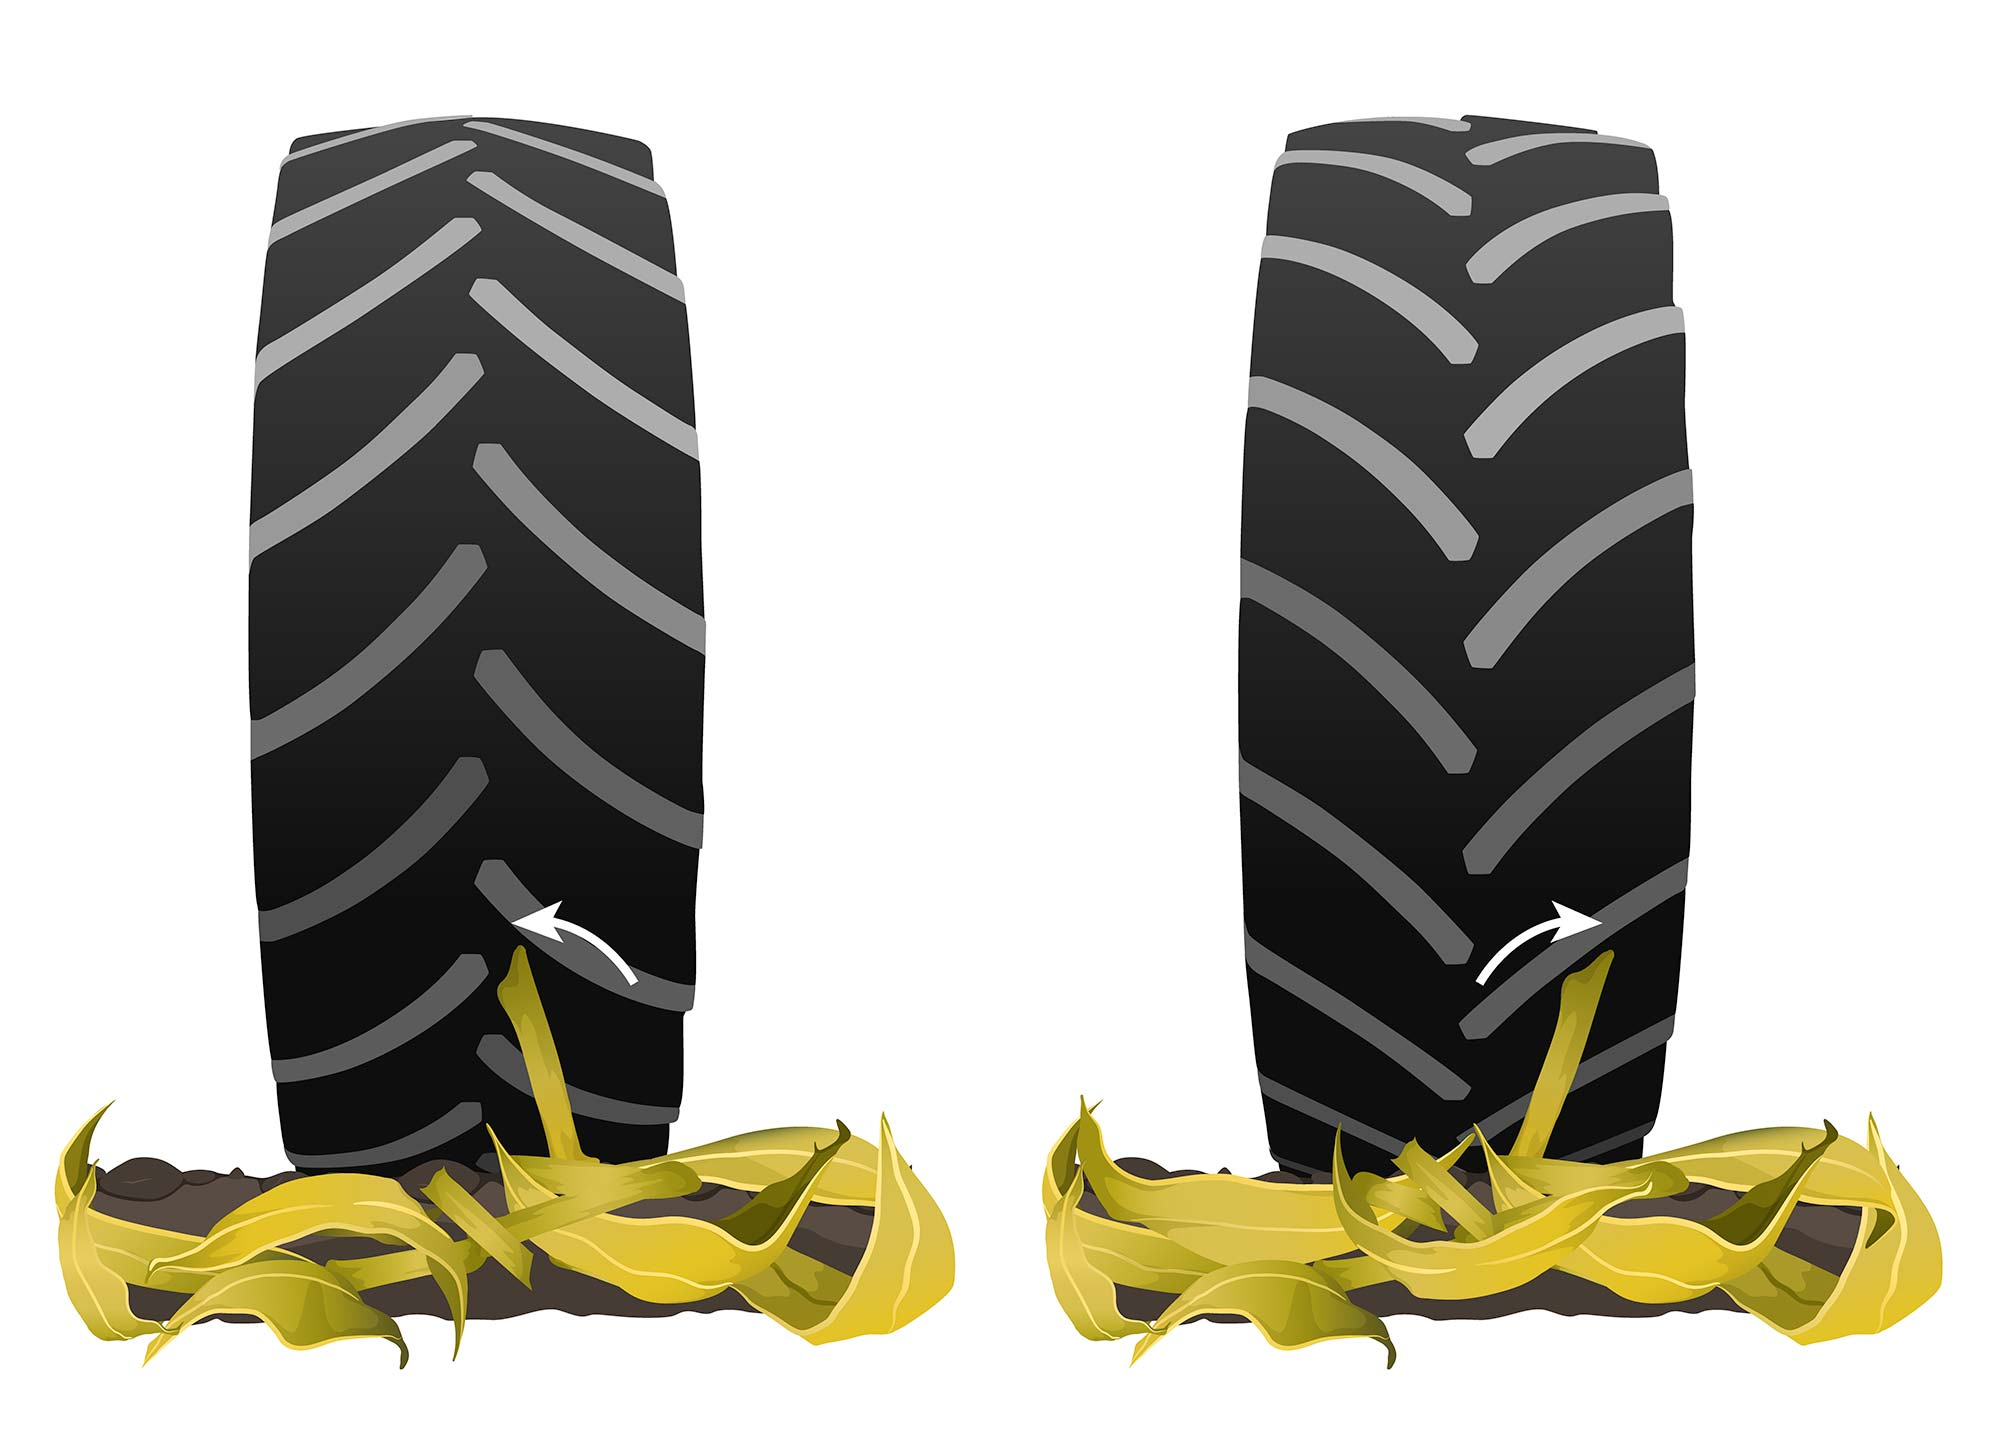 Running your combine's rear tires forwards instead of backwards help to reduce stubble damage to your tires by guiding stalks away from the center of your tire.